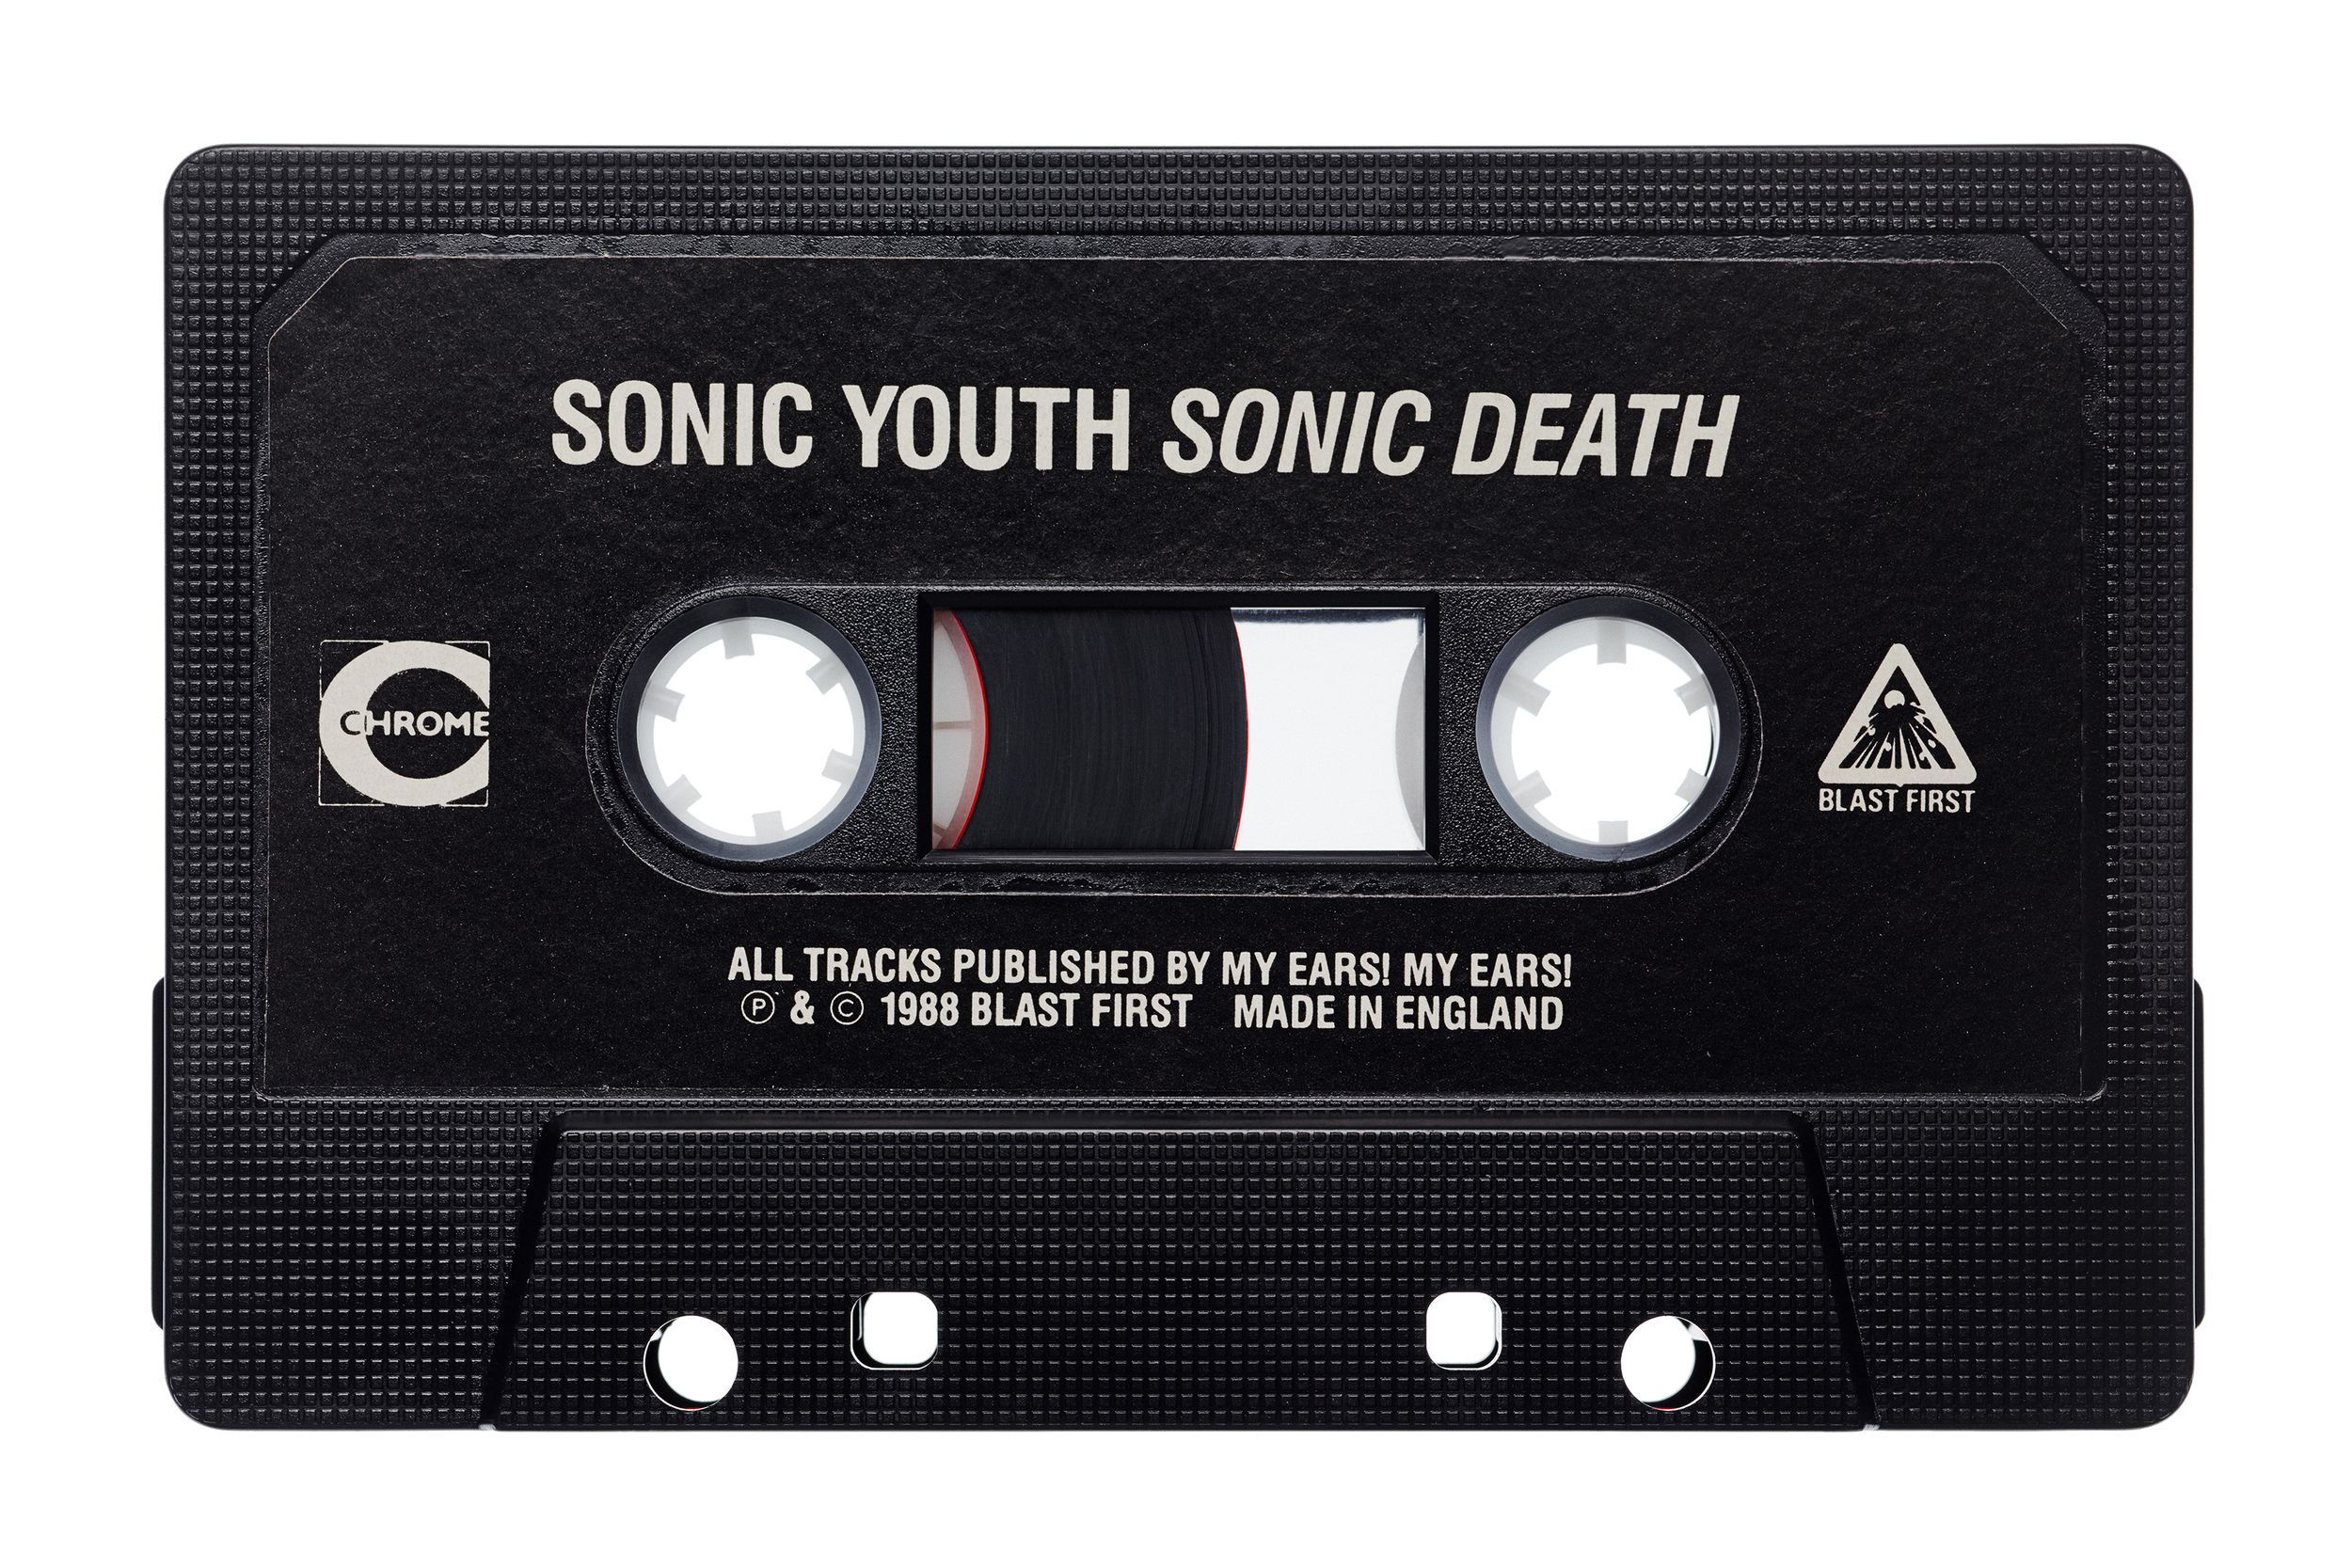 Sonic Youth - Sonic Death  Available through  Clic Gallery  in New York, St. Barth, Marin & East Hampton   Inquire about price